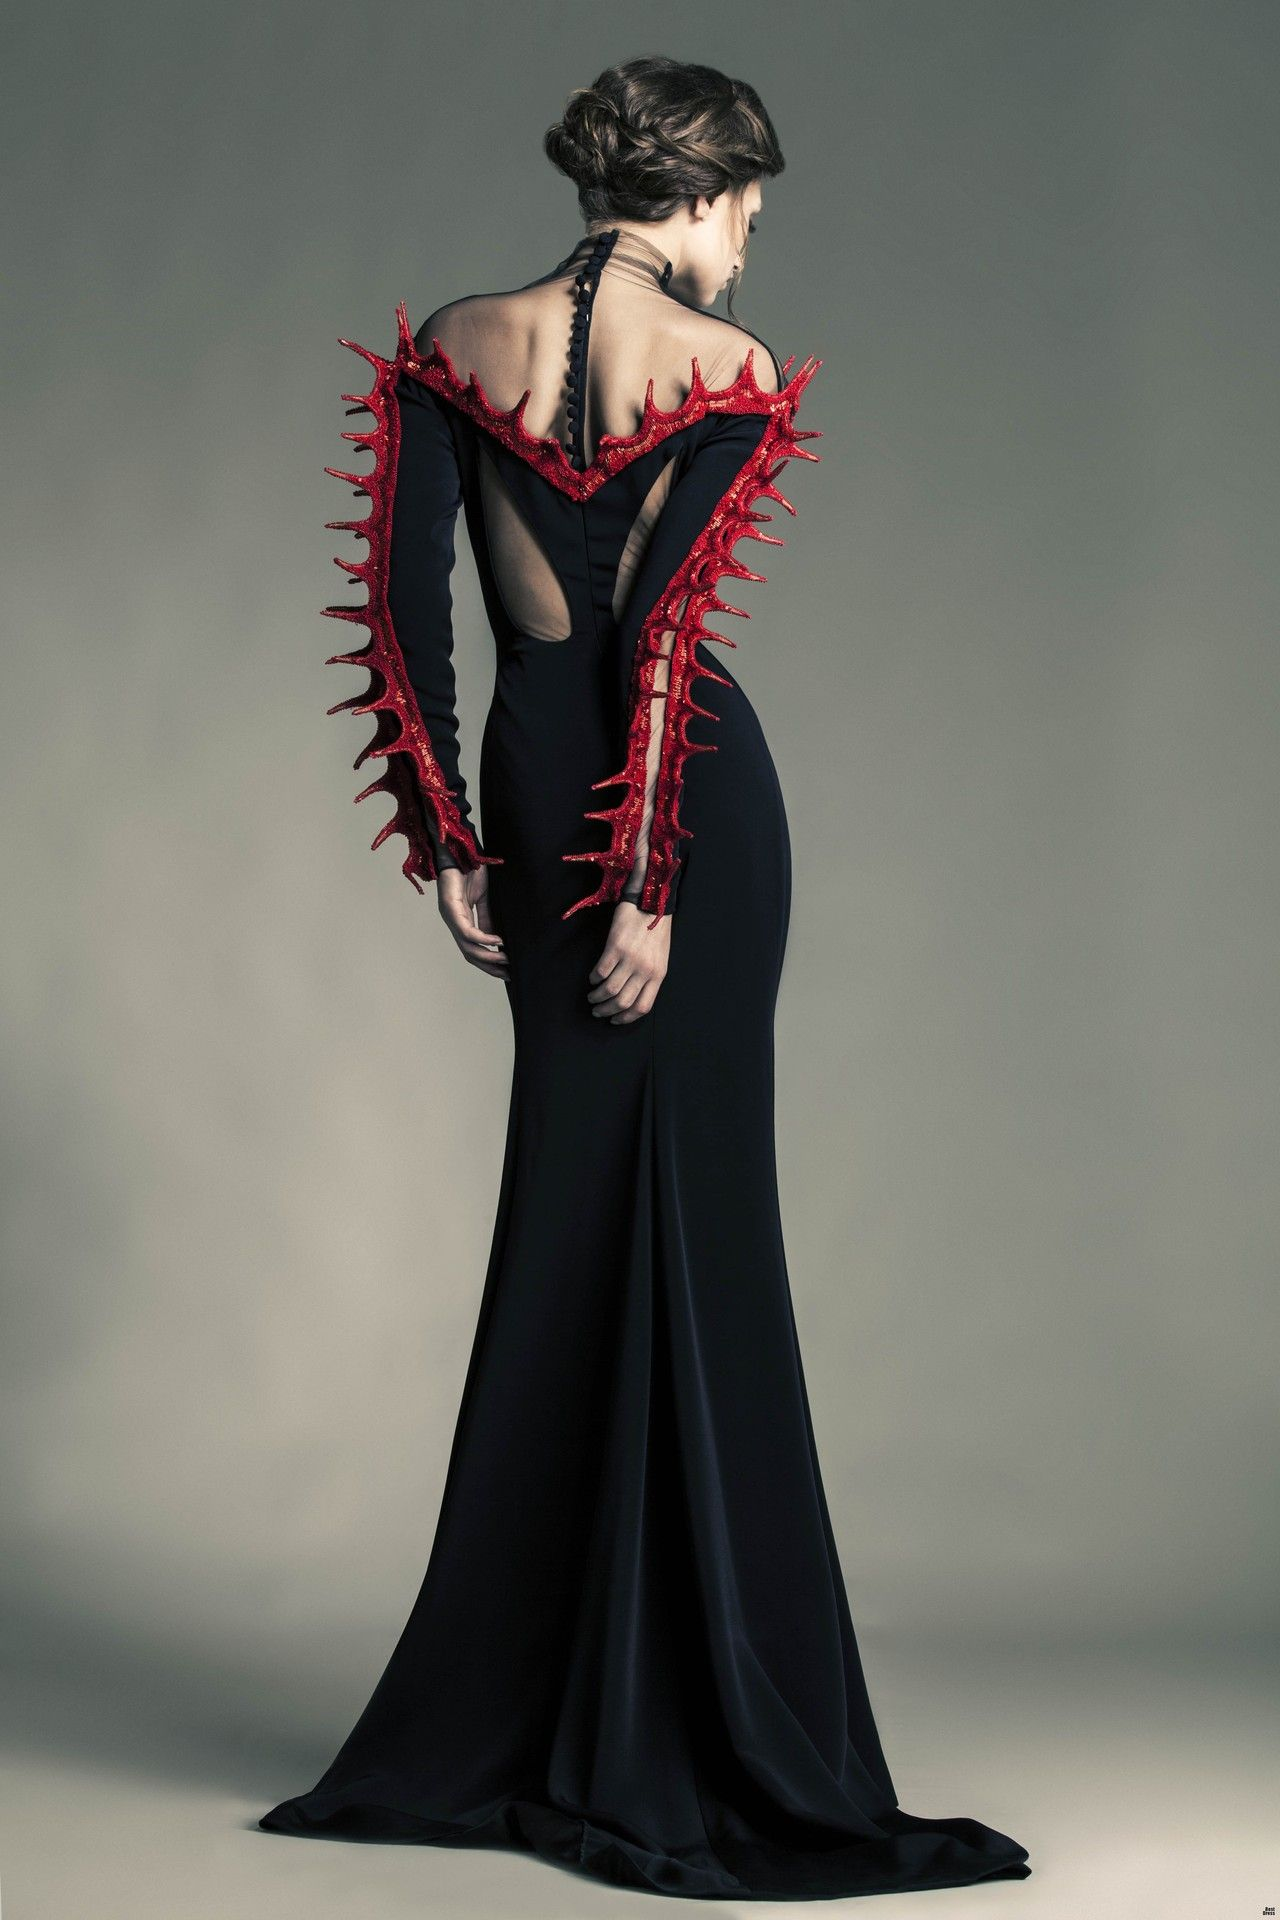 Devil sourcerer evil queen editorial avant garde for High fashion couture dresses